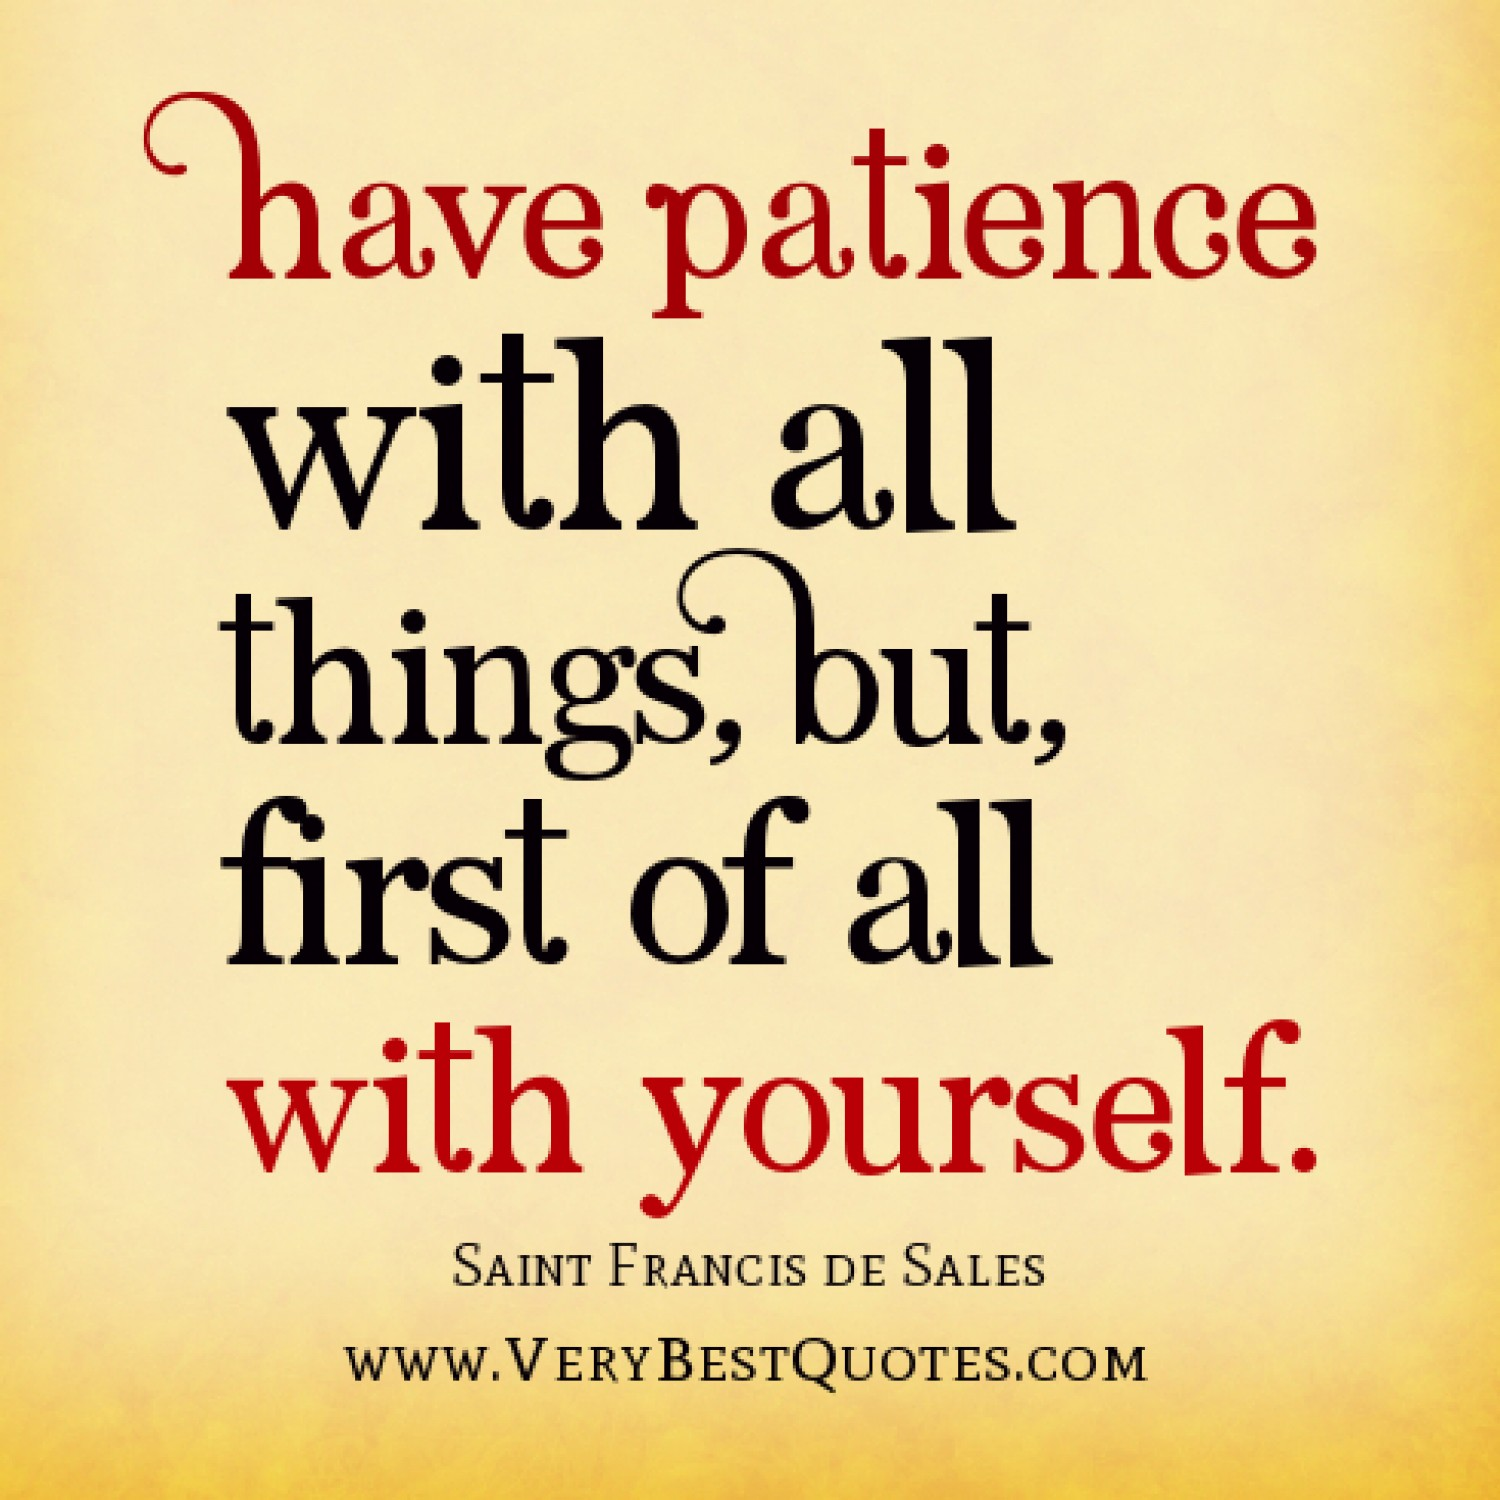 Anonymous Quotes About Friendship 61 Best Patience Quotes & Sayings